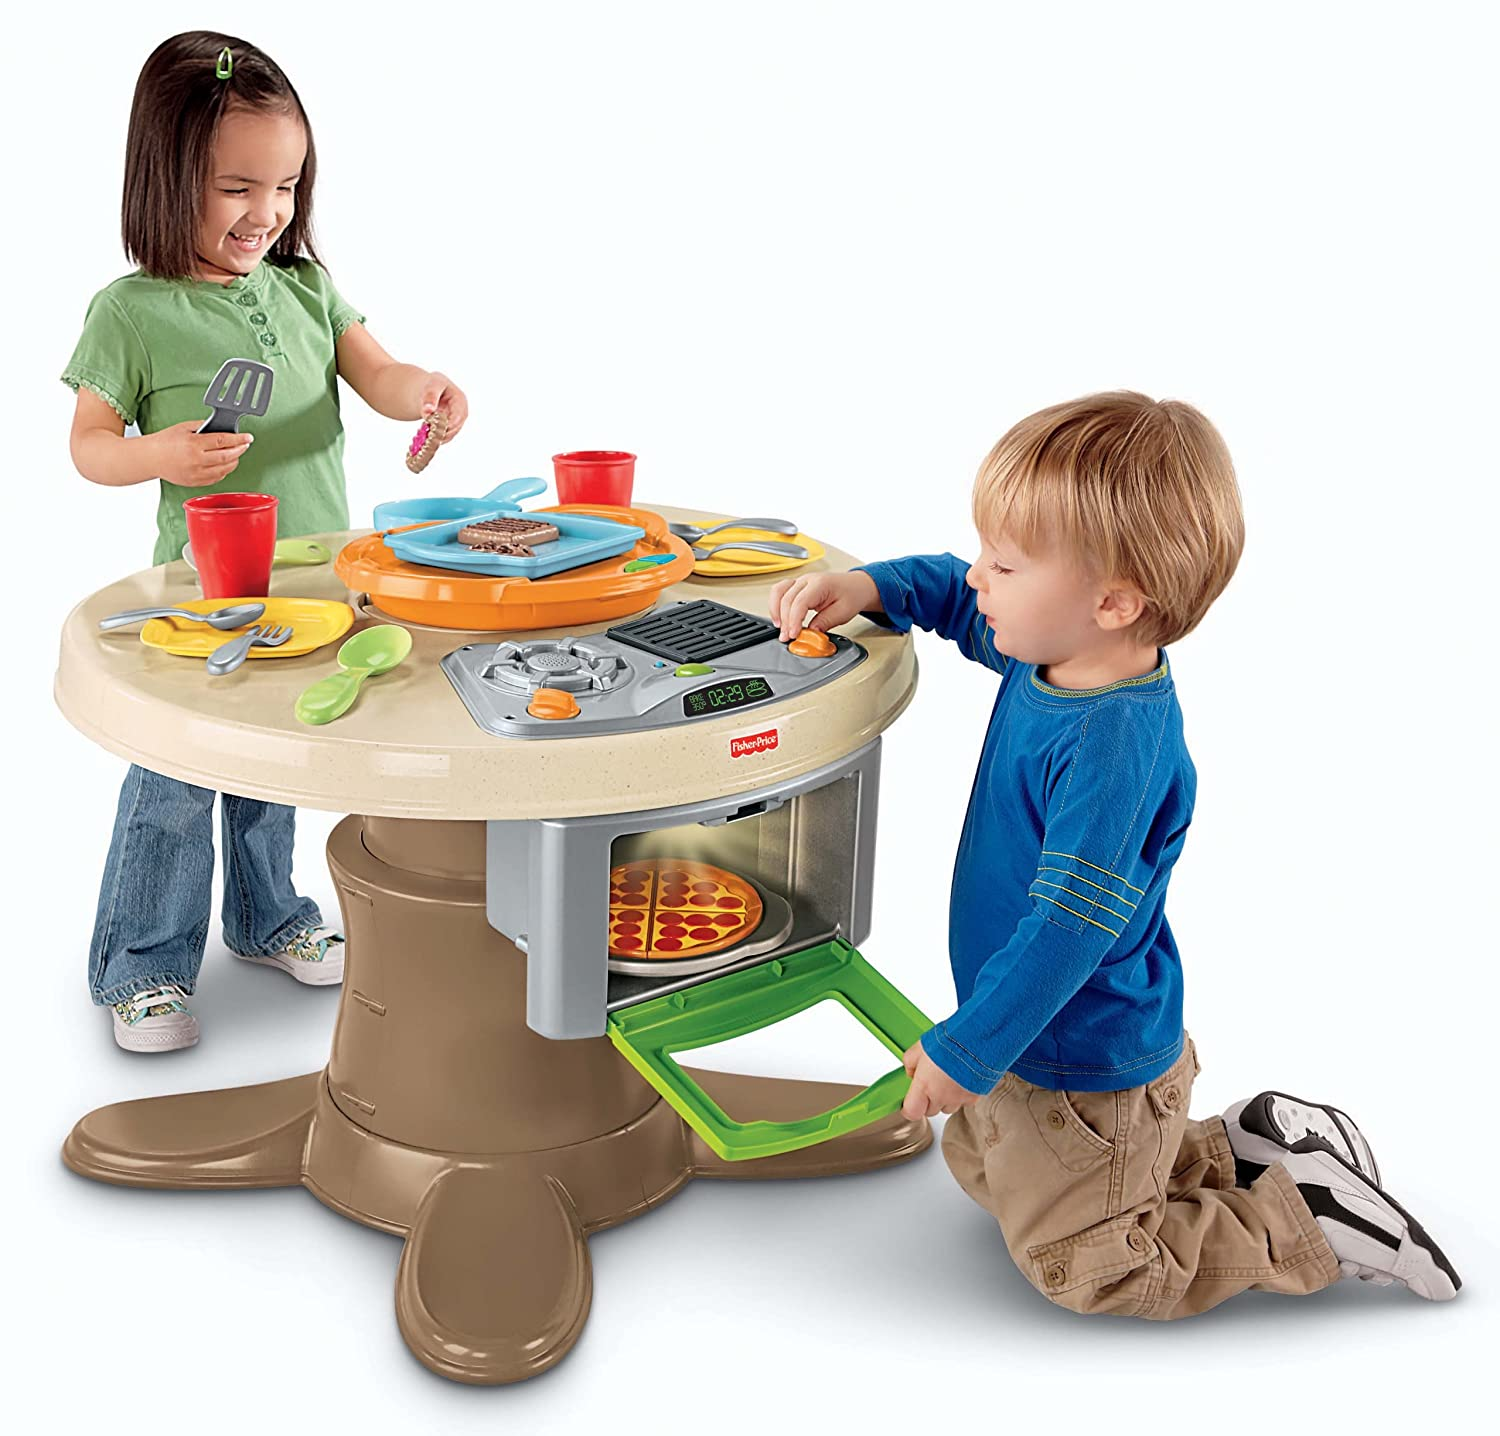 amazoncom fisherprice servinu0027 surprises kitchen u0026 table toys u0026 games